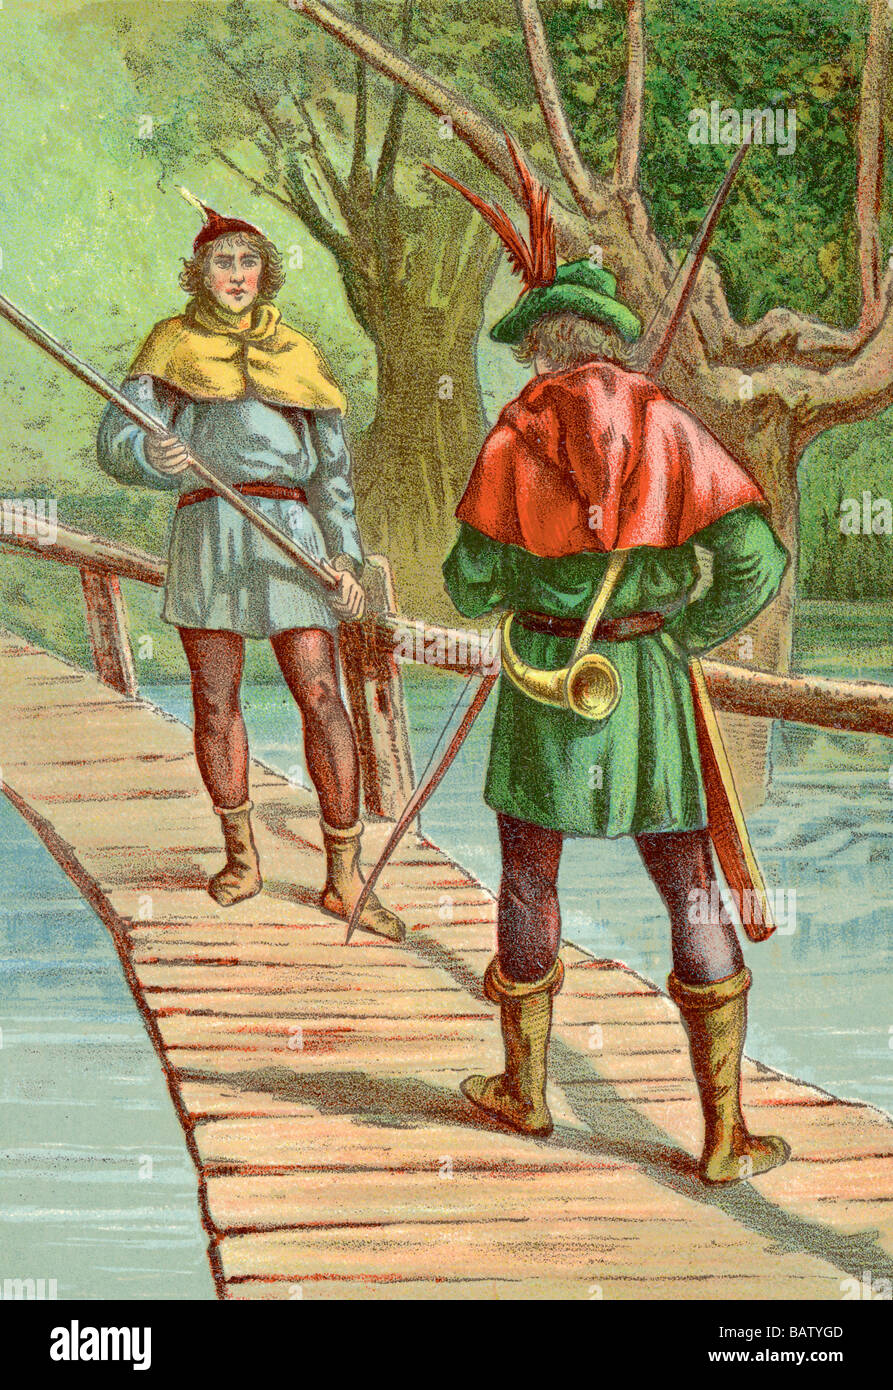 Robin Hood: Encounter With a Giant - Stock Image